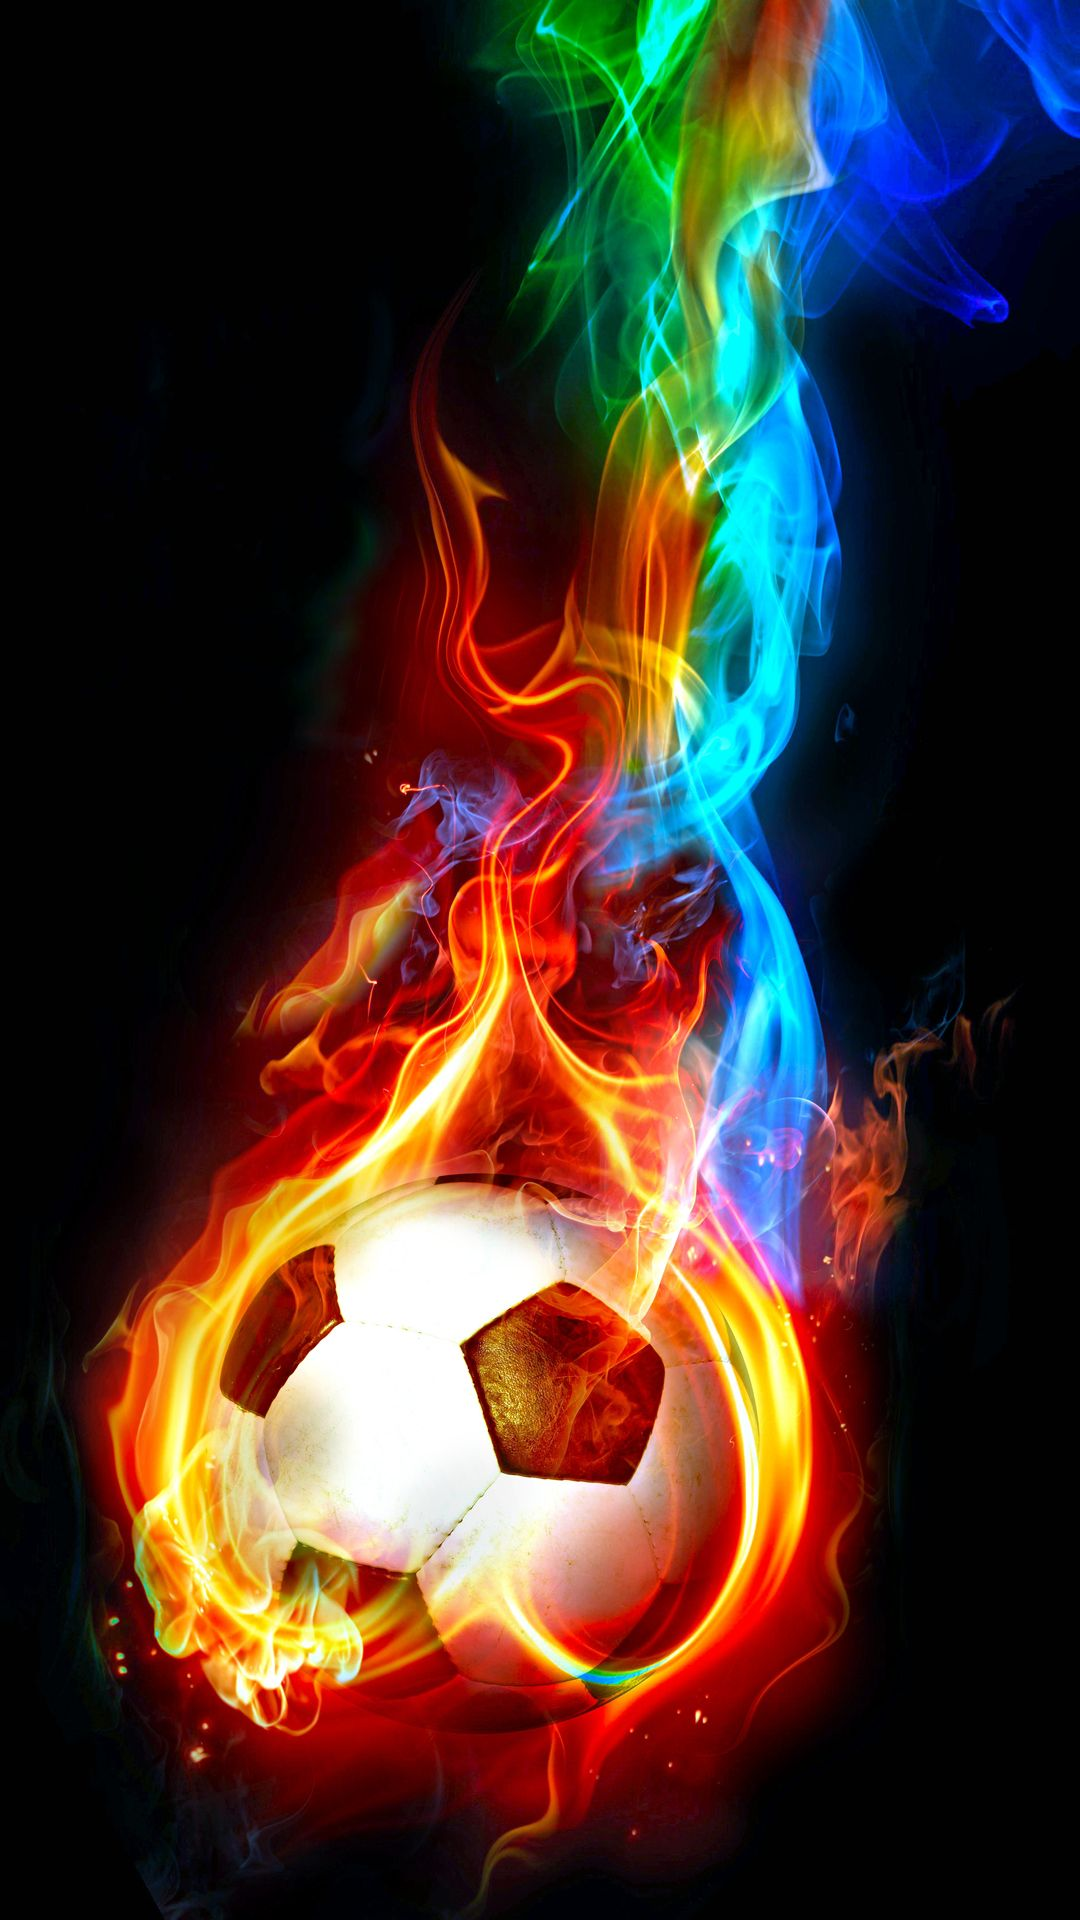 Soccer Iphone Wallpapers Top Free Soccer Iphone Backgrounds Wallpaperaccess